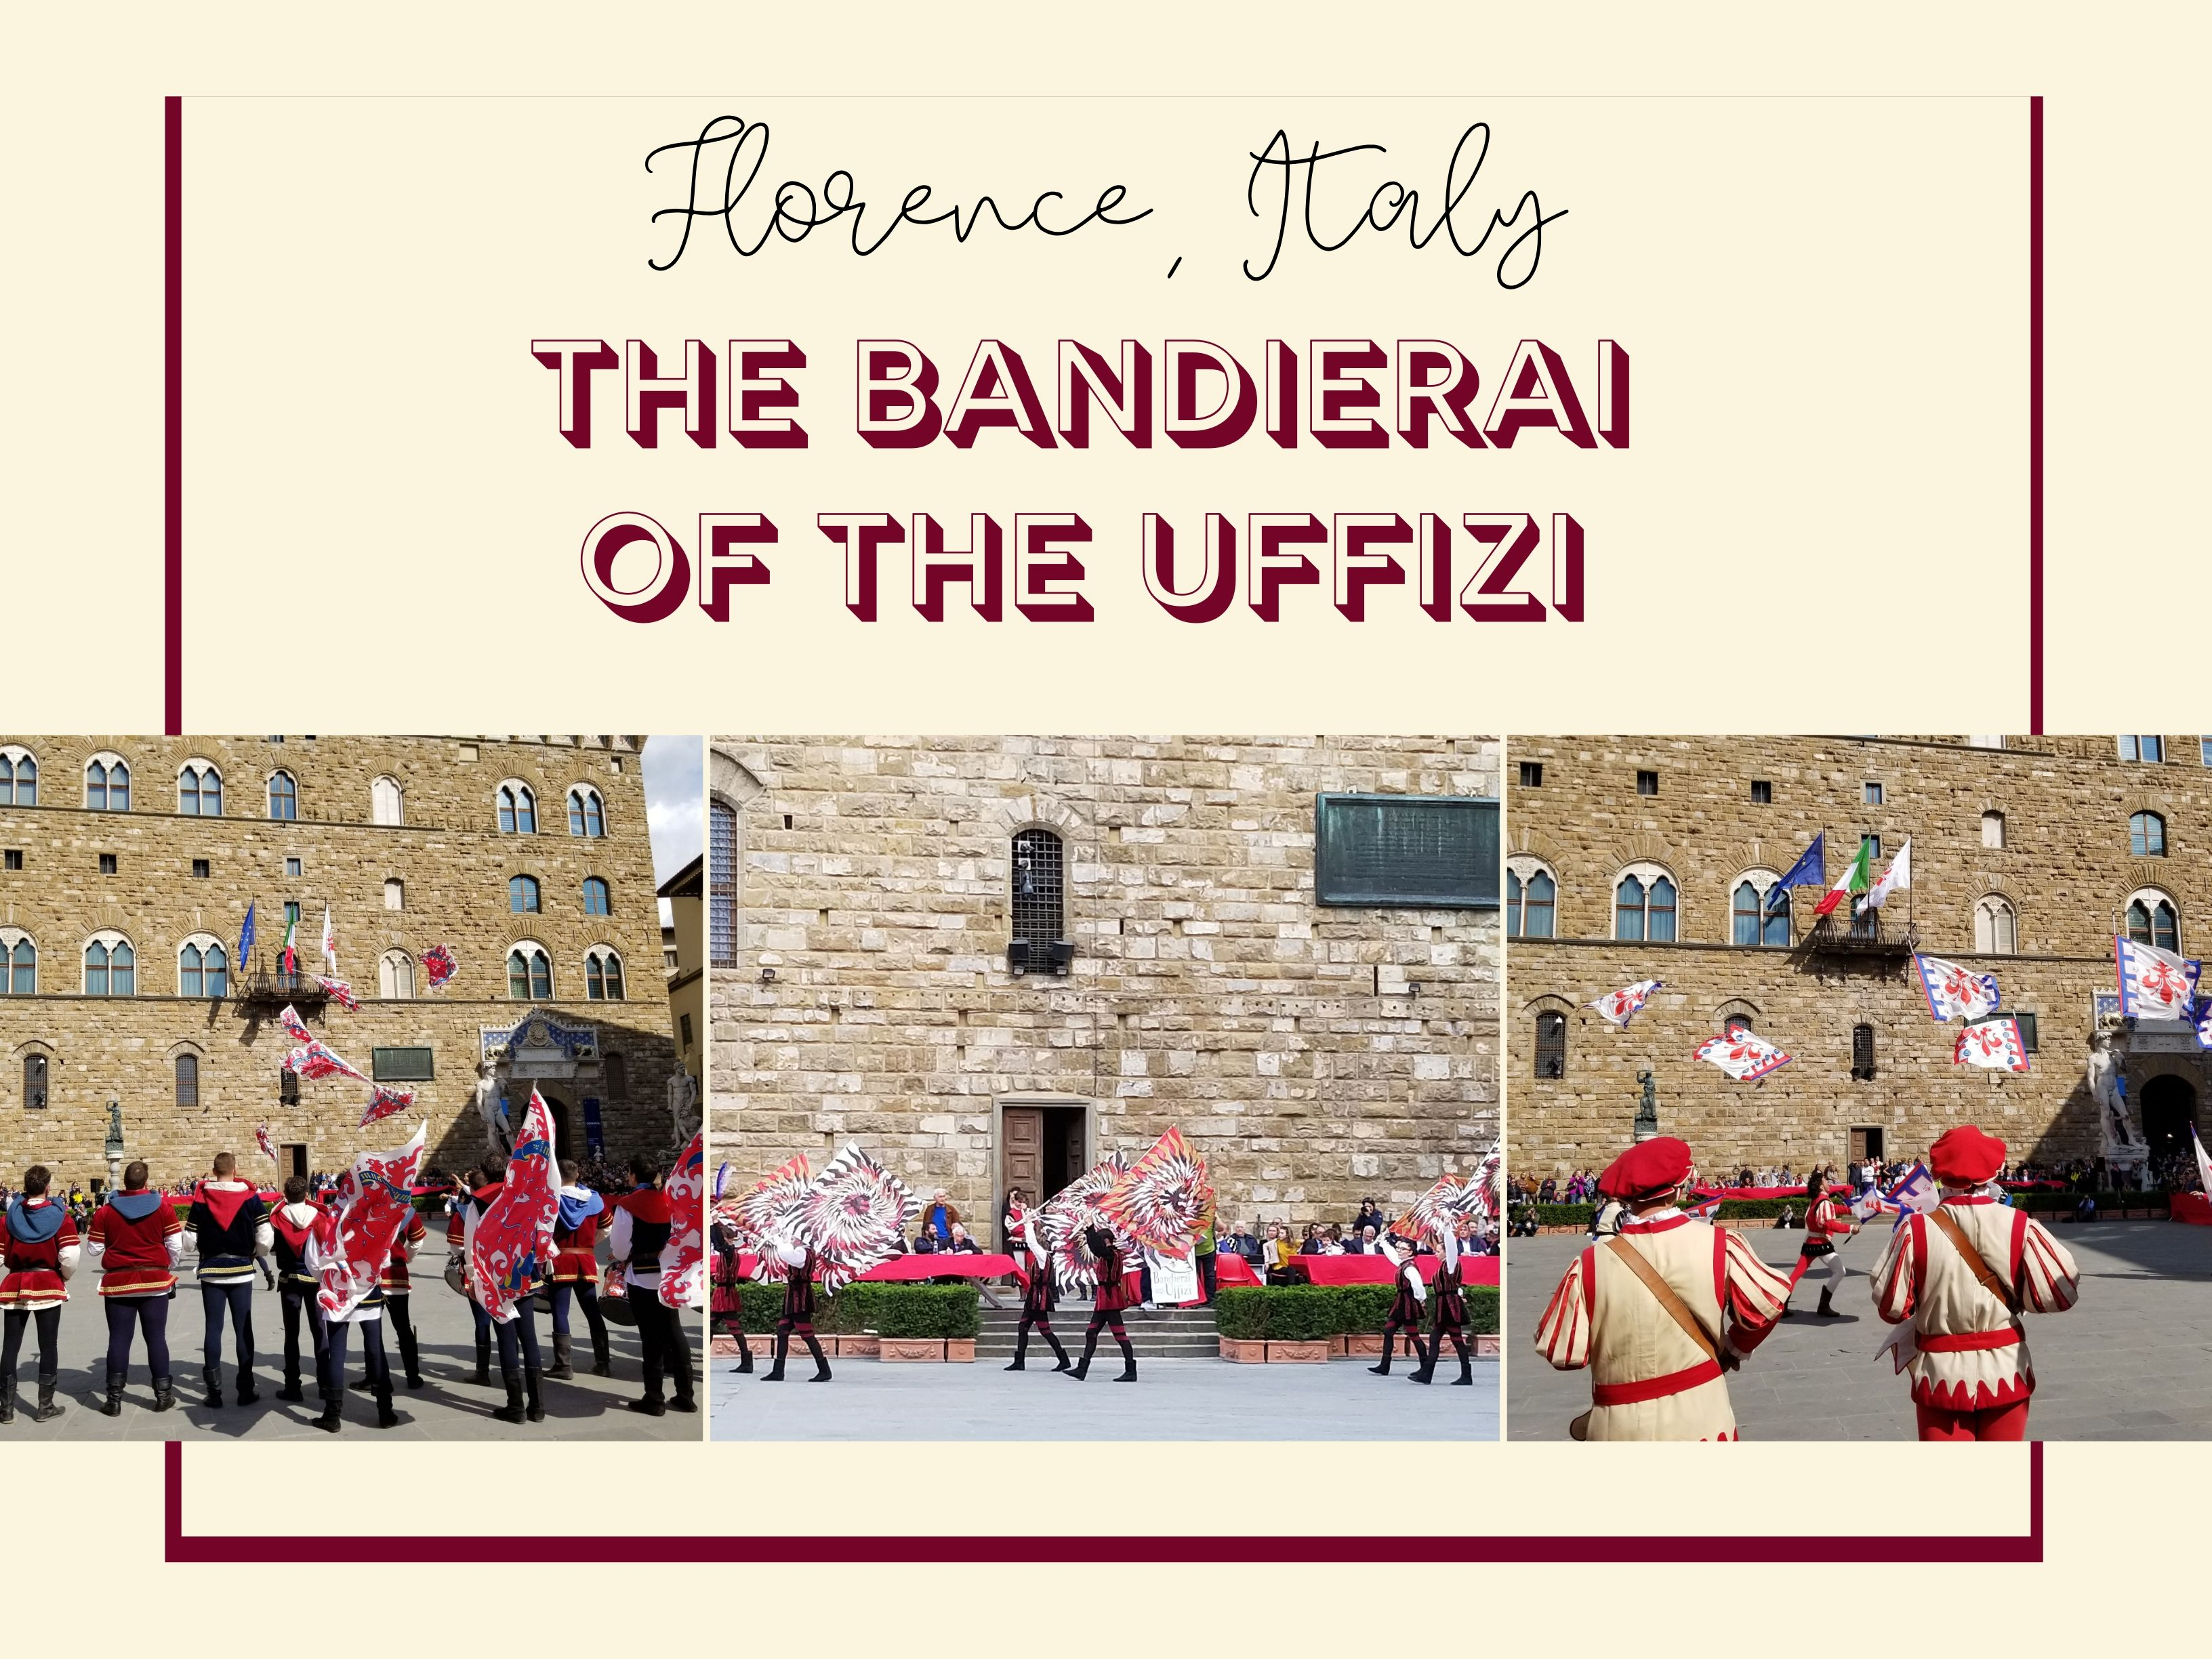 The Bandierai of the Uffizi in Florence, Italy, the throwing of the flag, event, ouritalianjourney.com, https://ouritalianjourney.com/bandierai-uffizi-florence